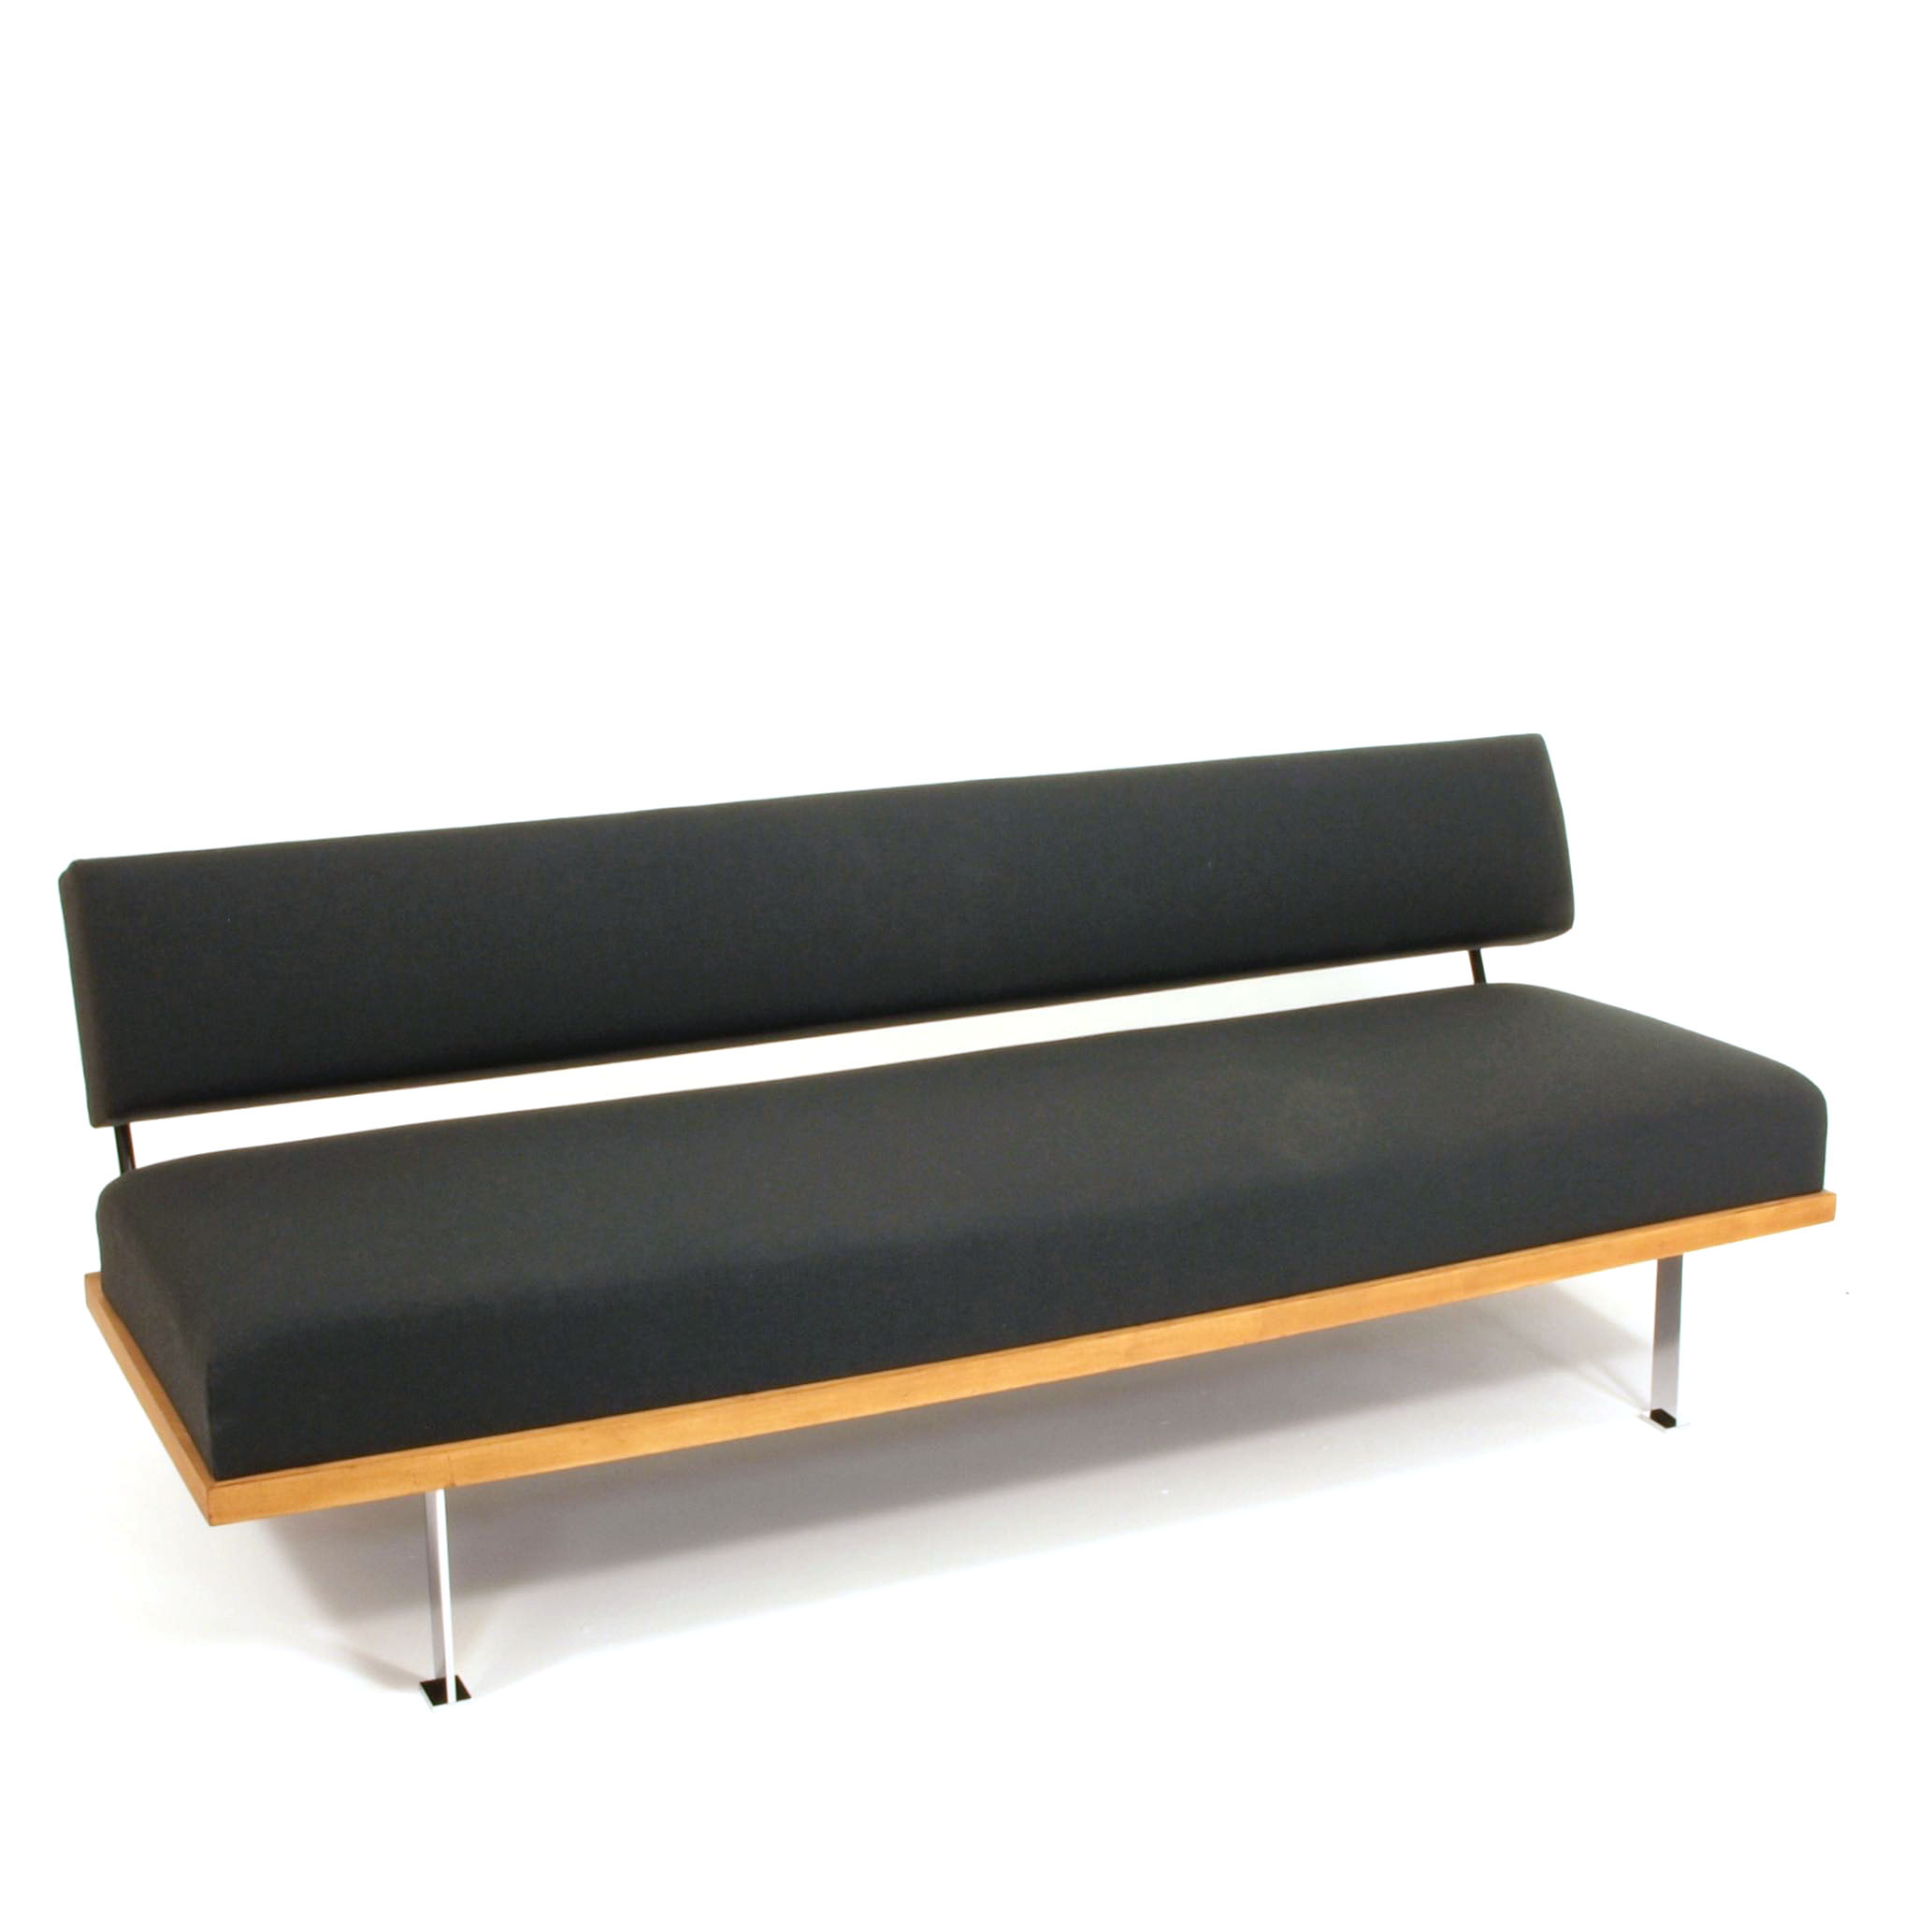 hugo peters sofa komplett restauriert m bel z rich. Black Bedroom Furniture Sets. Home Design Ideas